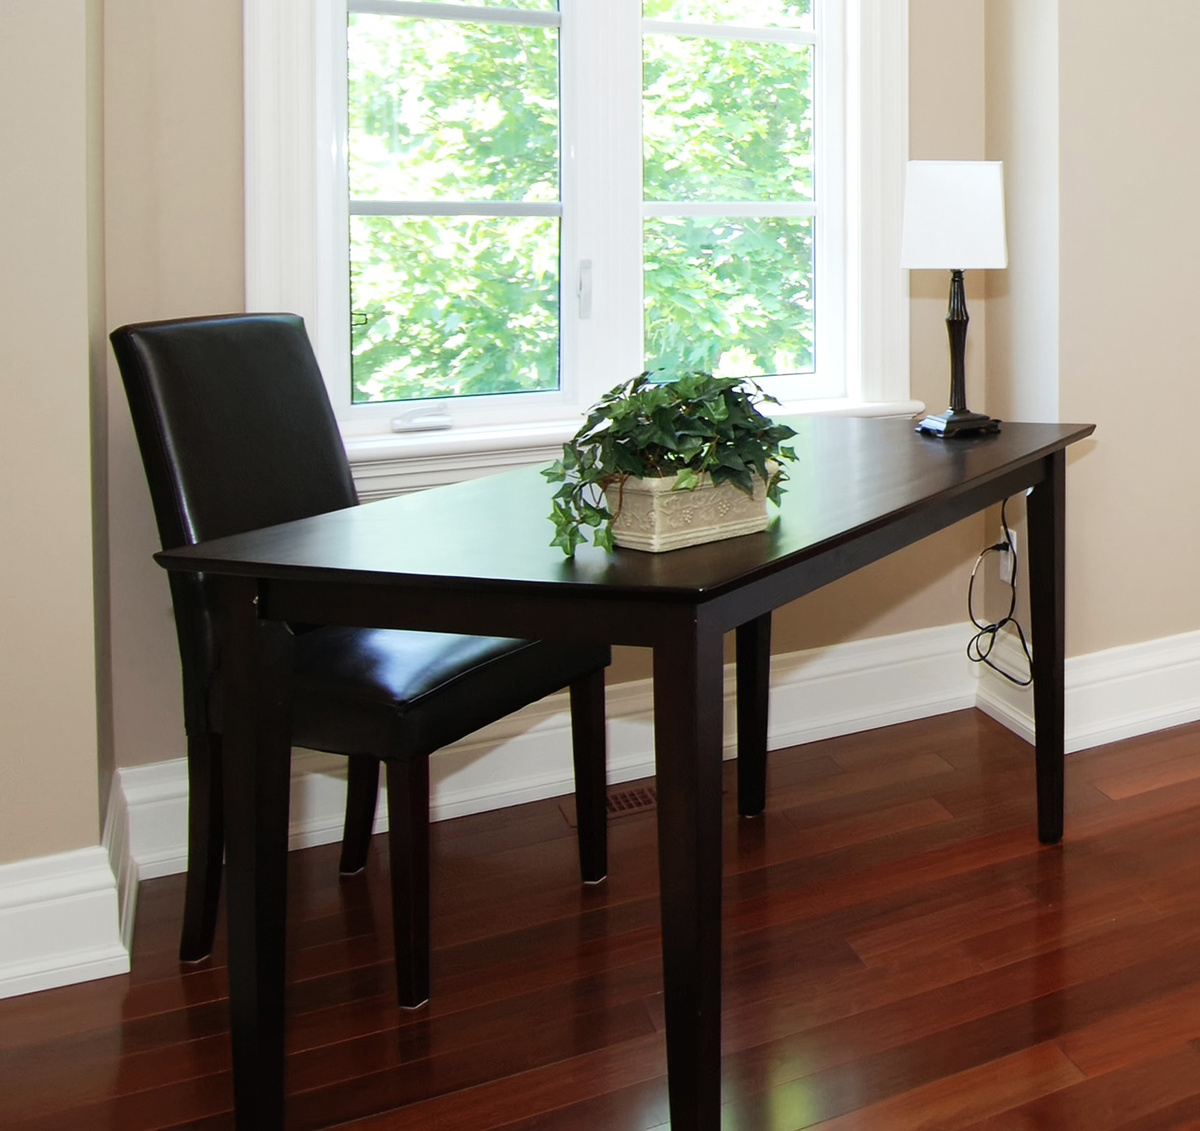 Source Furniture Brampton Office Furniture Rental For Home Staging By Stagers Source In Toronto